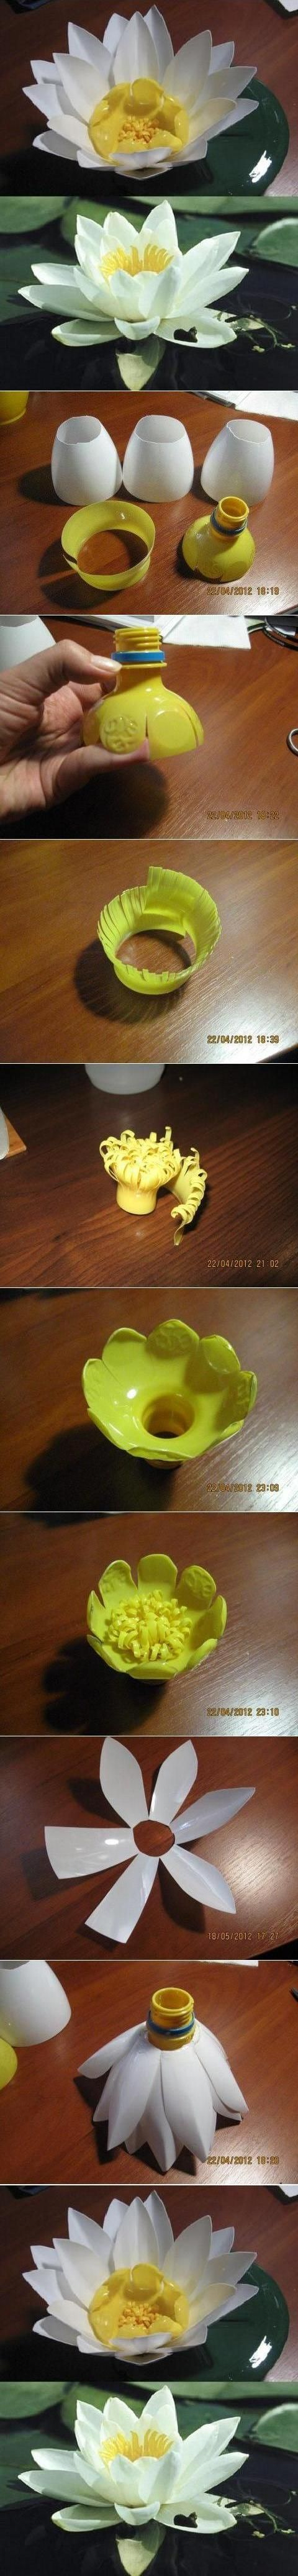 diy-plastic-bottles-flower-pin